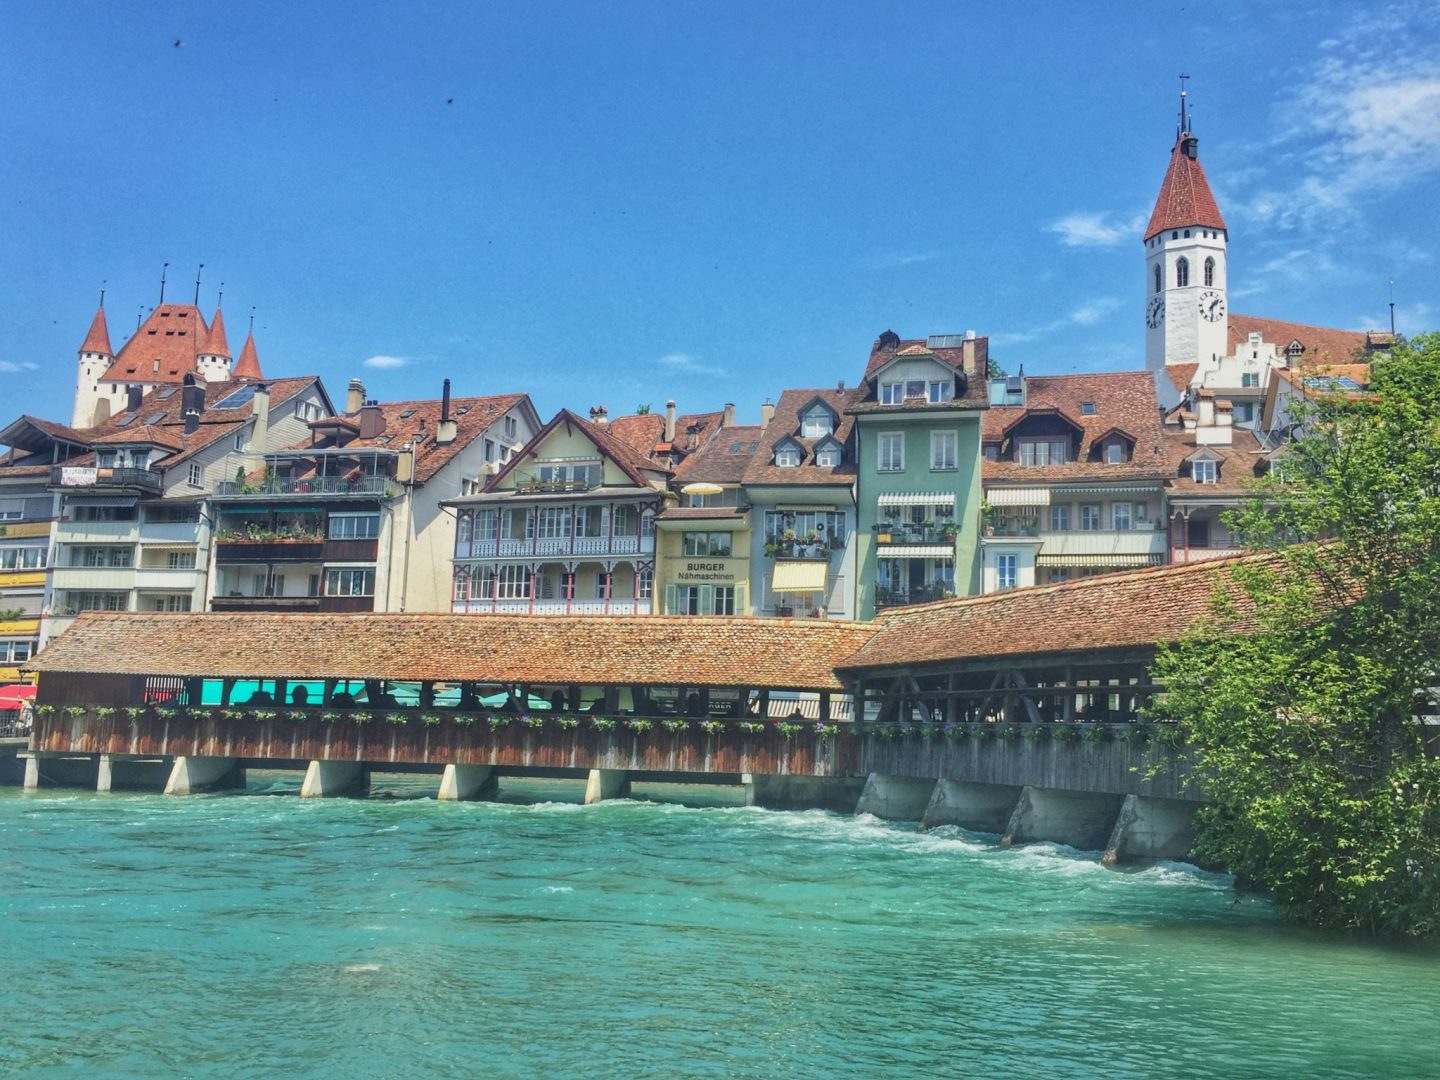 City of Thun, Switzerland, medieval church and wooden bridge